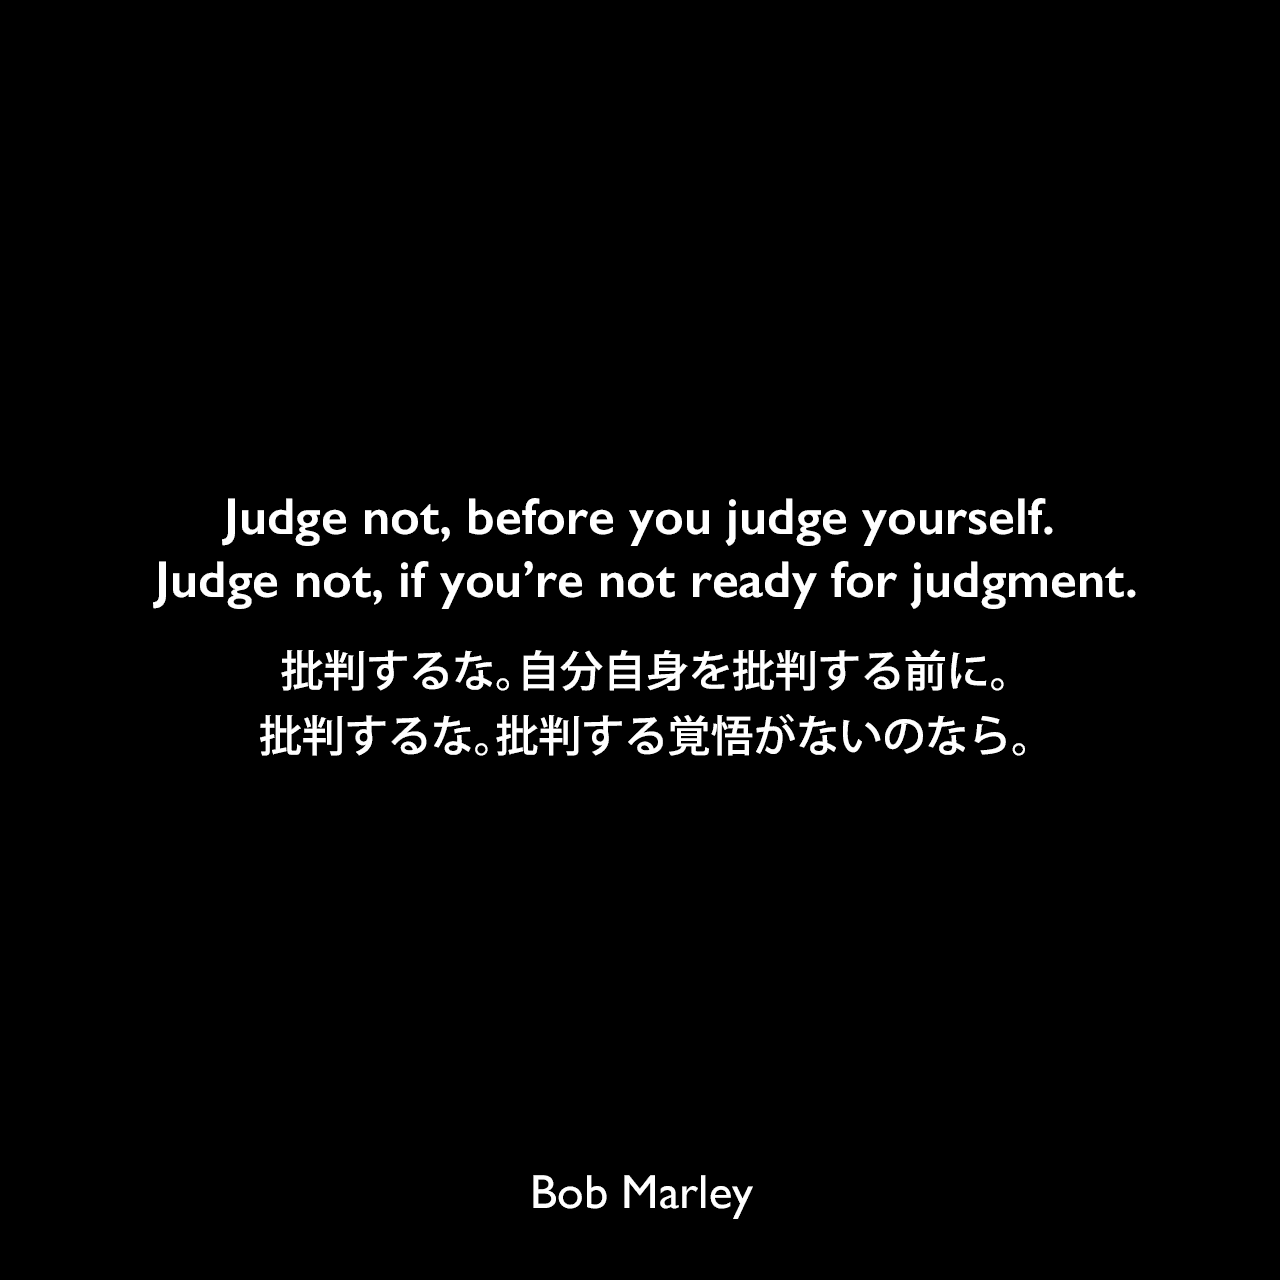 Judge not, before you judge yourself. Judge not, if you're not ready for judgment.批判するな。自分自身を批判する前に。批判するな。批判する覚悟がないのなら。Bob Marley